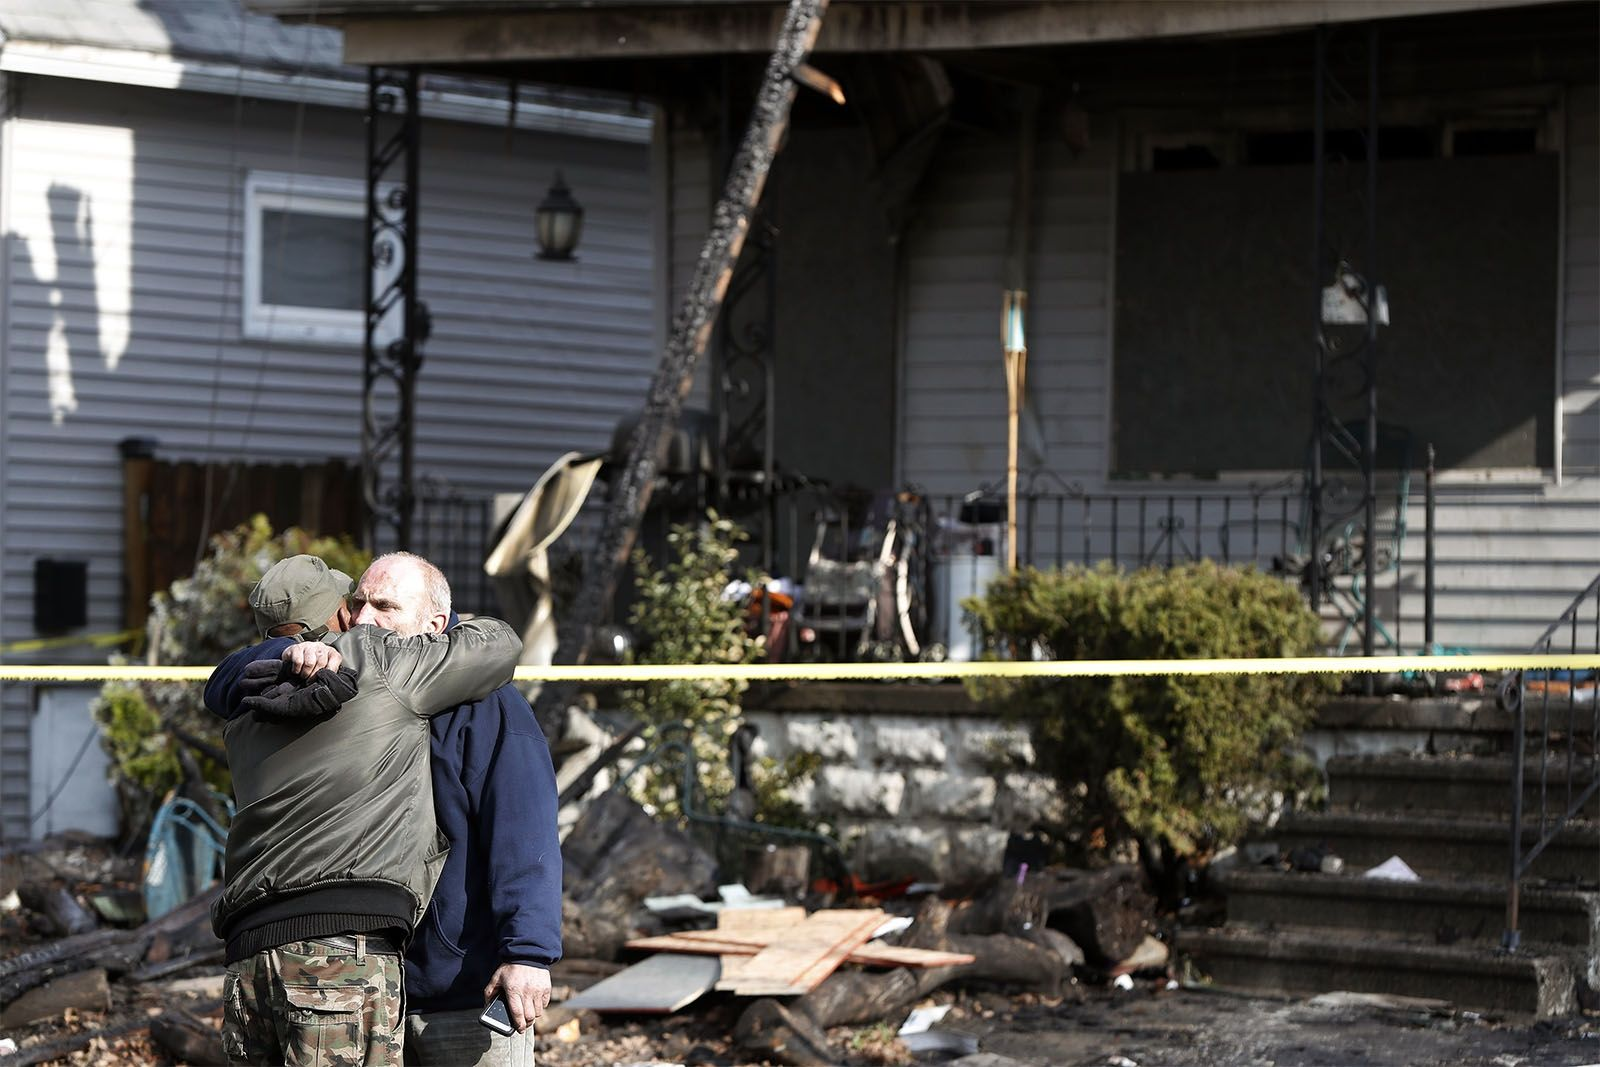 Joseph Conti hugs his neighbors in front of his home on Benzinger St in Buffalo Monday, January 29, 2018.  The early morning fire took the life of Conti's 7 year old son.